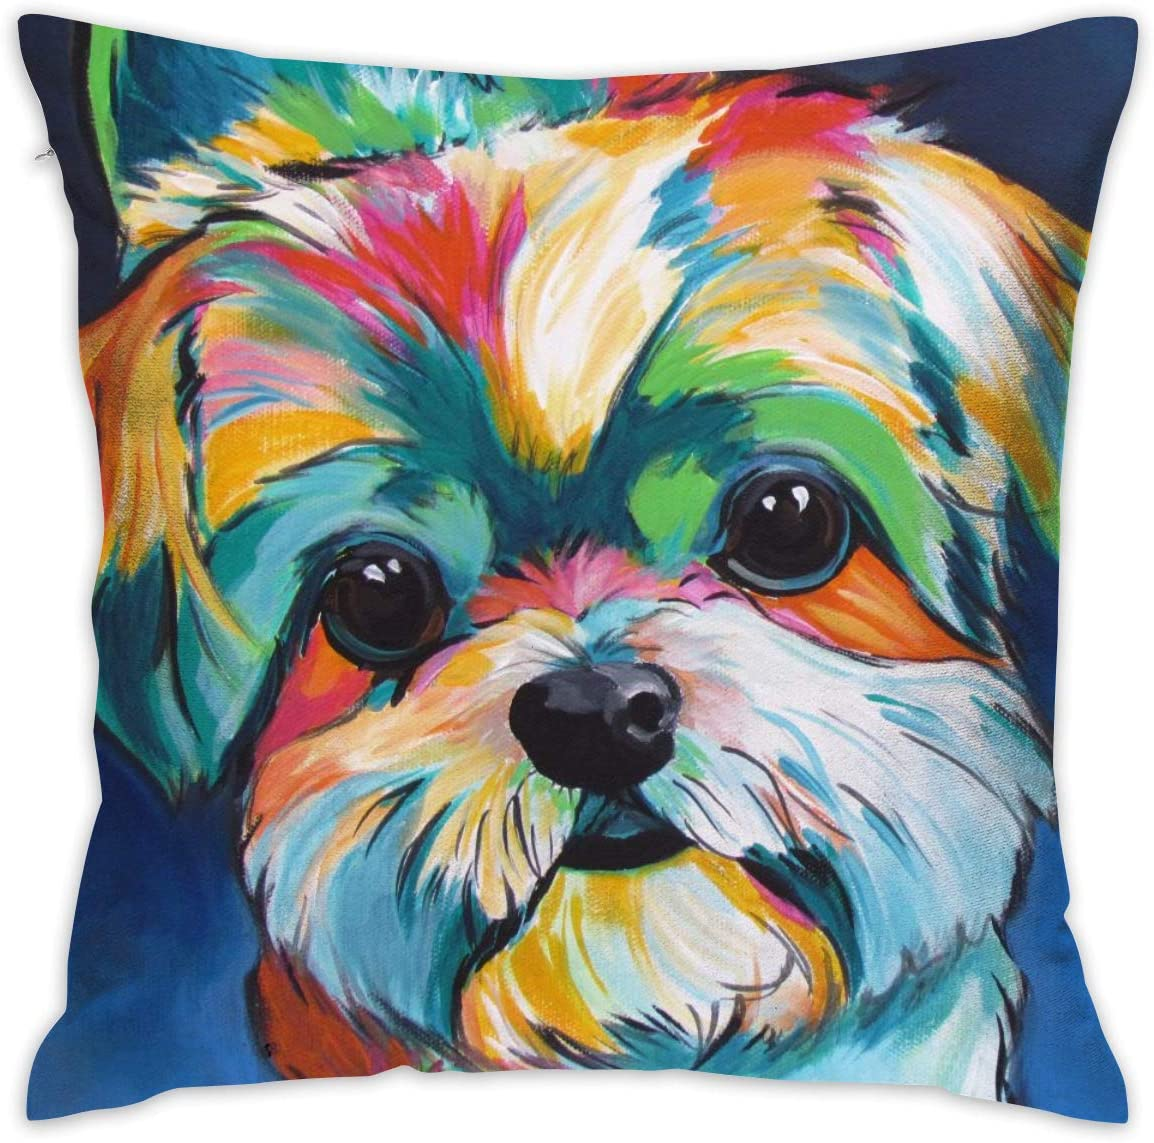 Shih Tzu Cute White Art Puppy Dog 18x18 Bedroom Theme Living Room Dorm Covers Cases Couch Outdoor Indoor Sofa Set Square Throw Pillow Decorative Party Farmhouse Bed Home Decorations Ornament